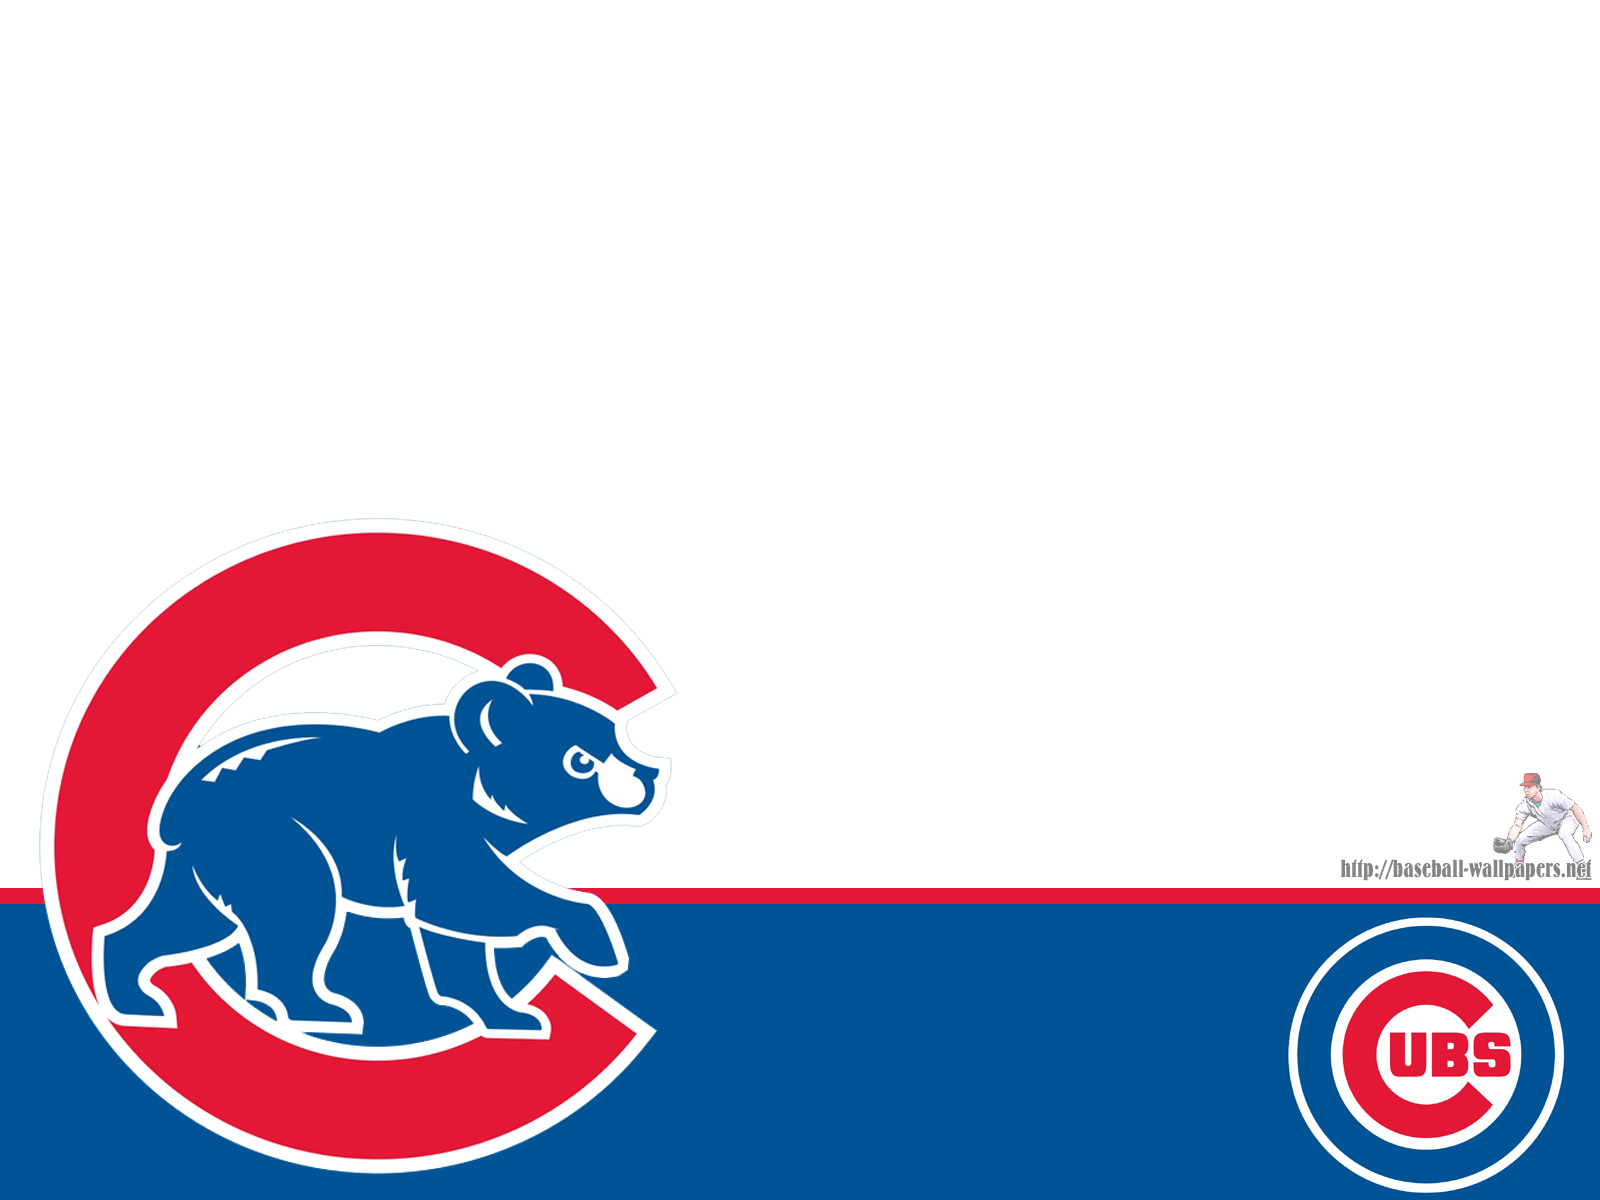 Cubs Wallpaper Iphone Chicago cubs wallpapers 1600x1200